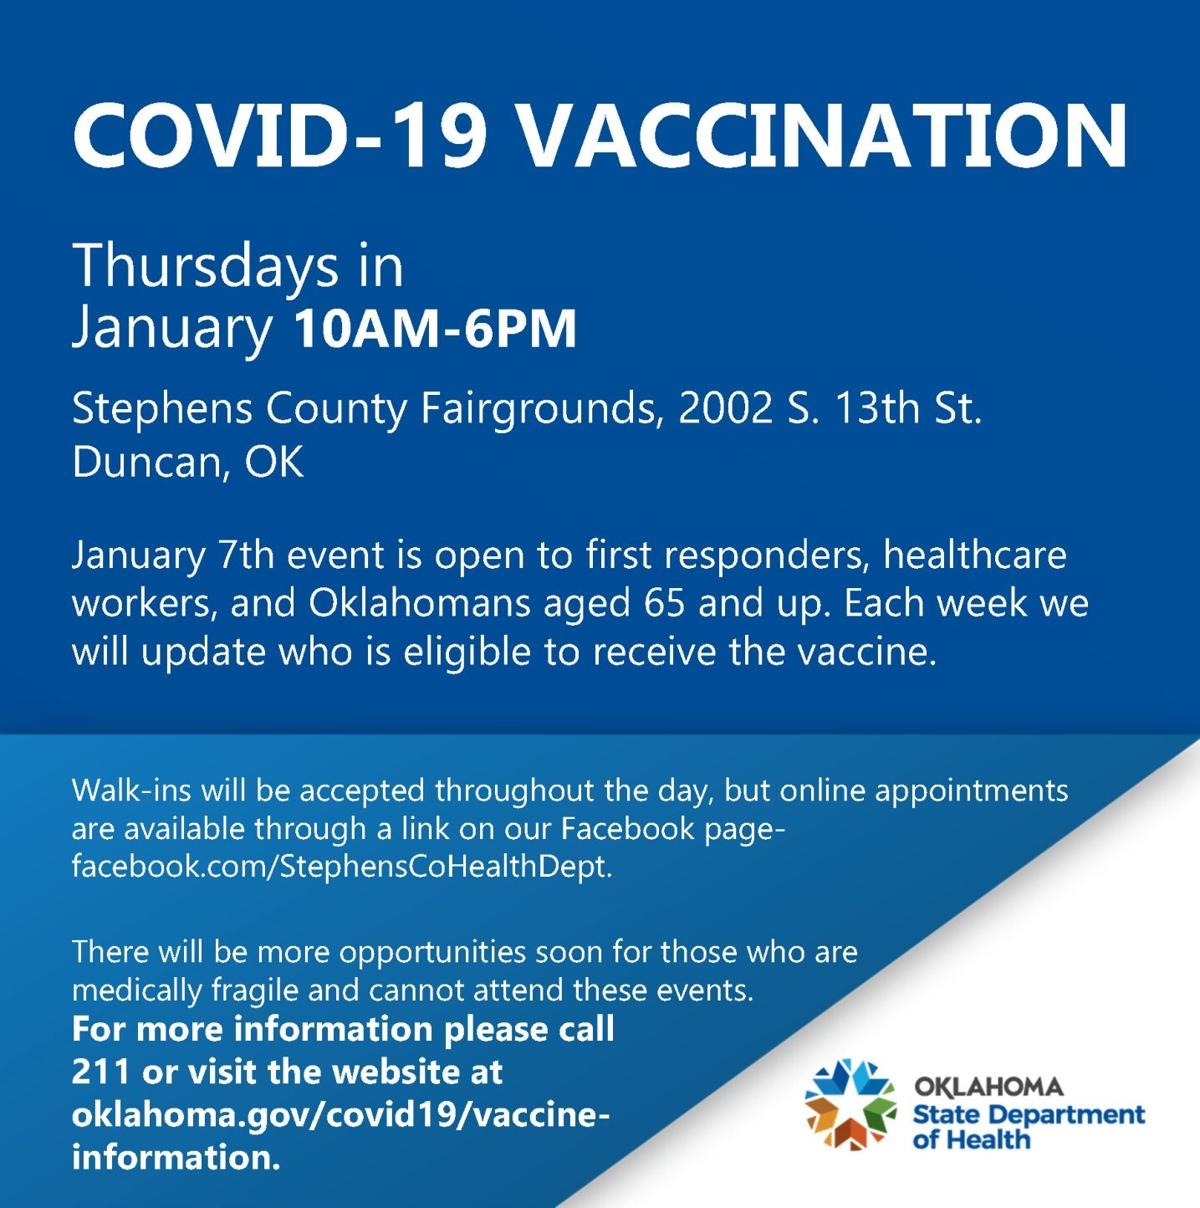 COVID-19 vaccine at fairgrounds